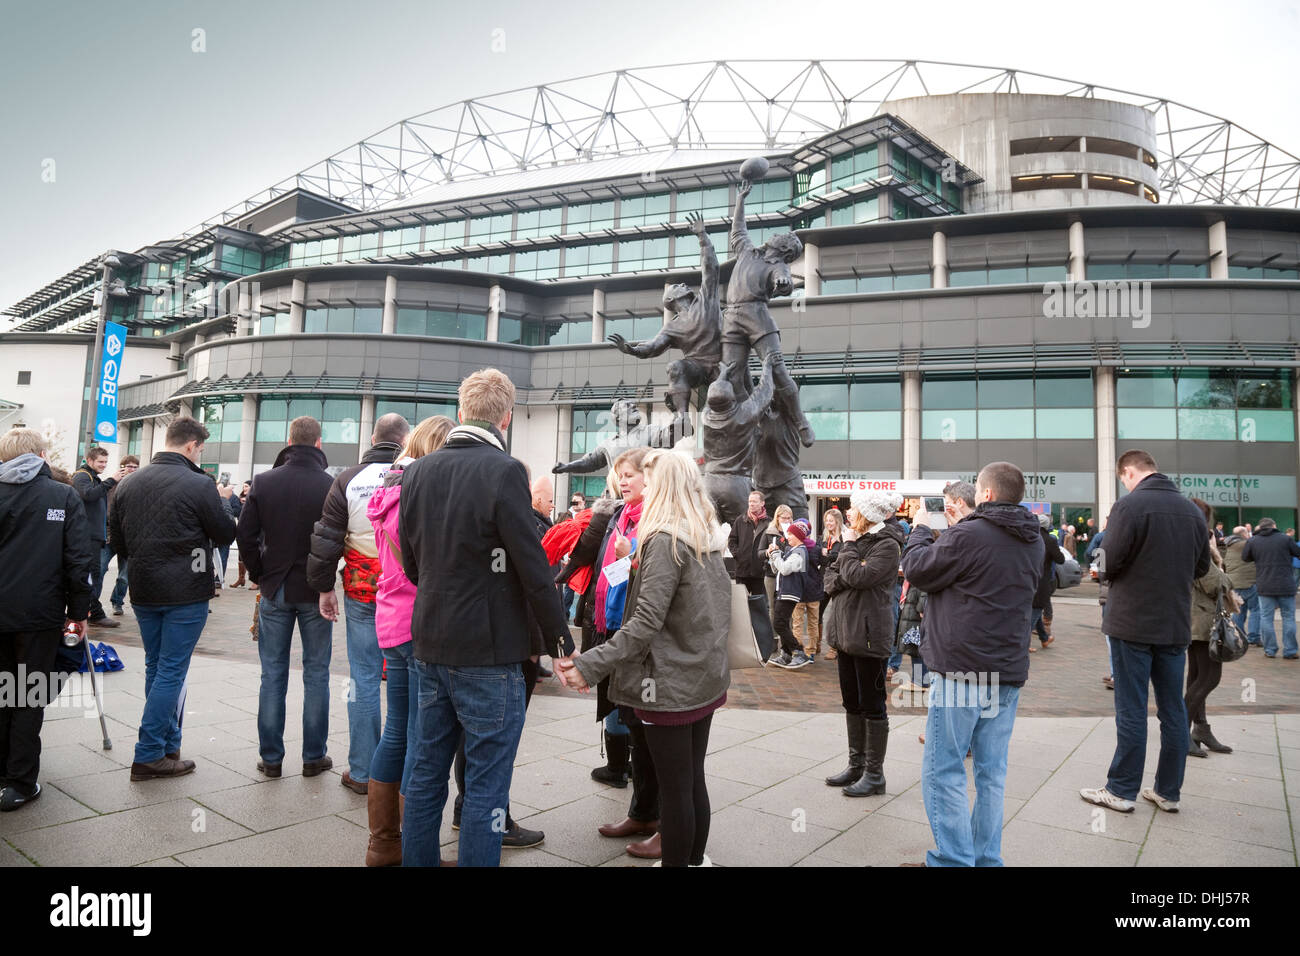 Twickenham stadium, fans going to watch the rugby match between England and Argentina, Twickenham, London UK Stock Photo